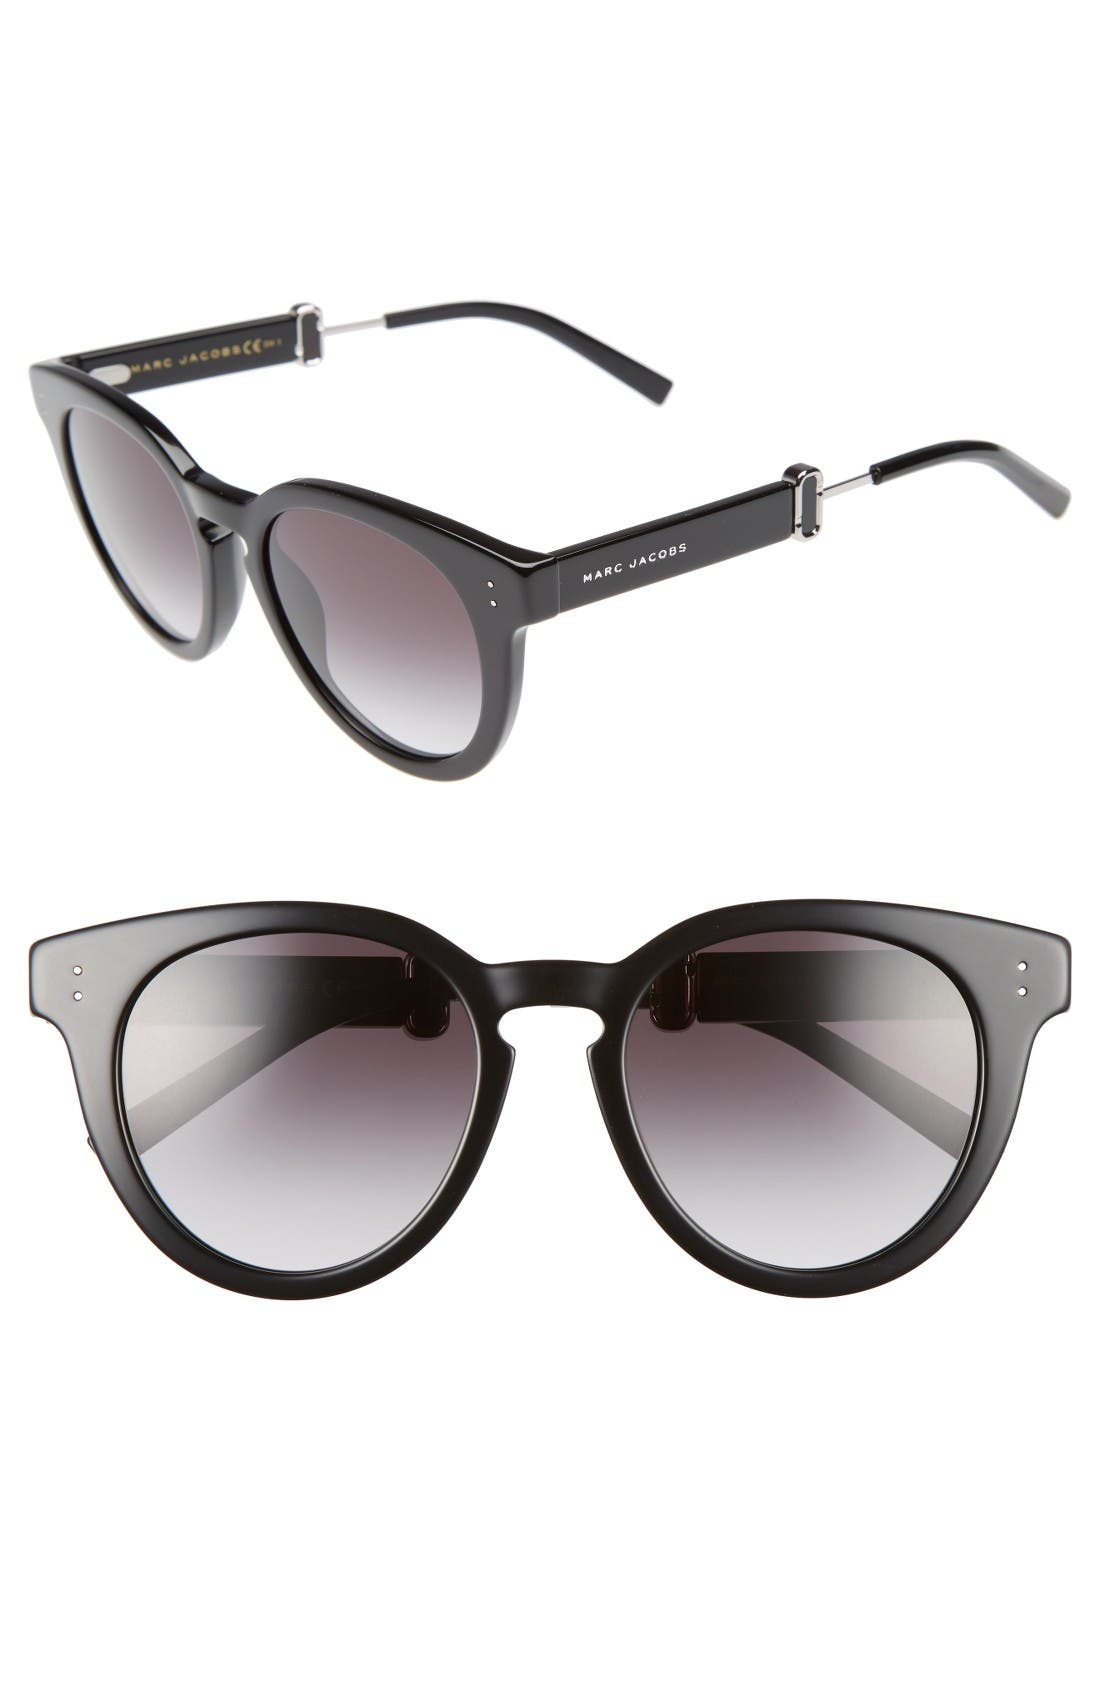 Main Image - MARC JACOBS 50mm Round Sunglasses